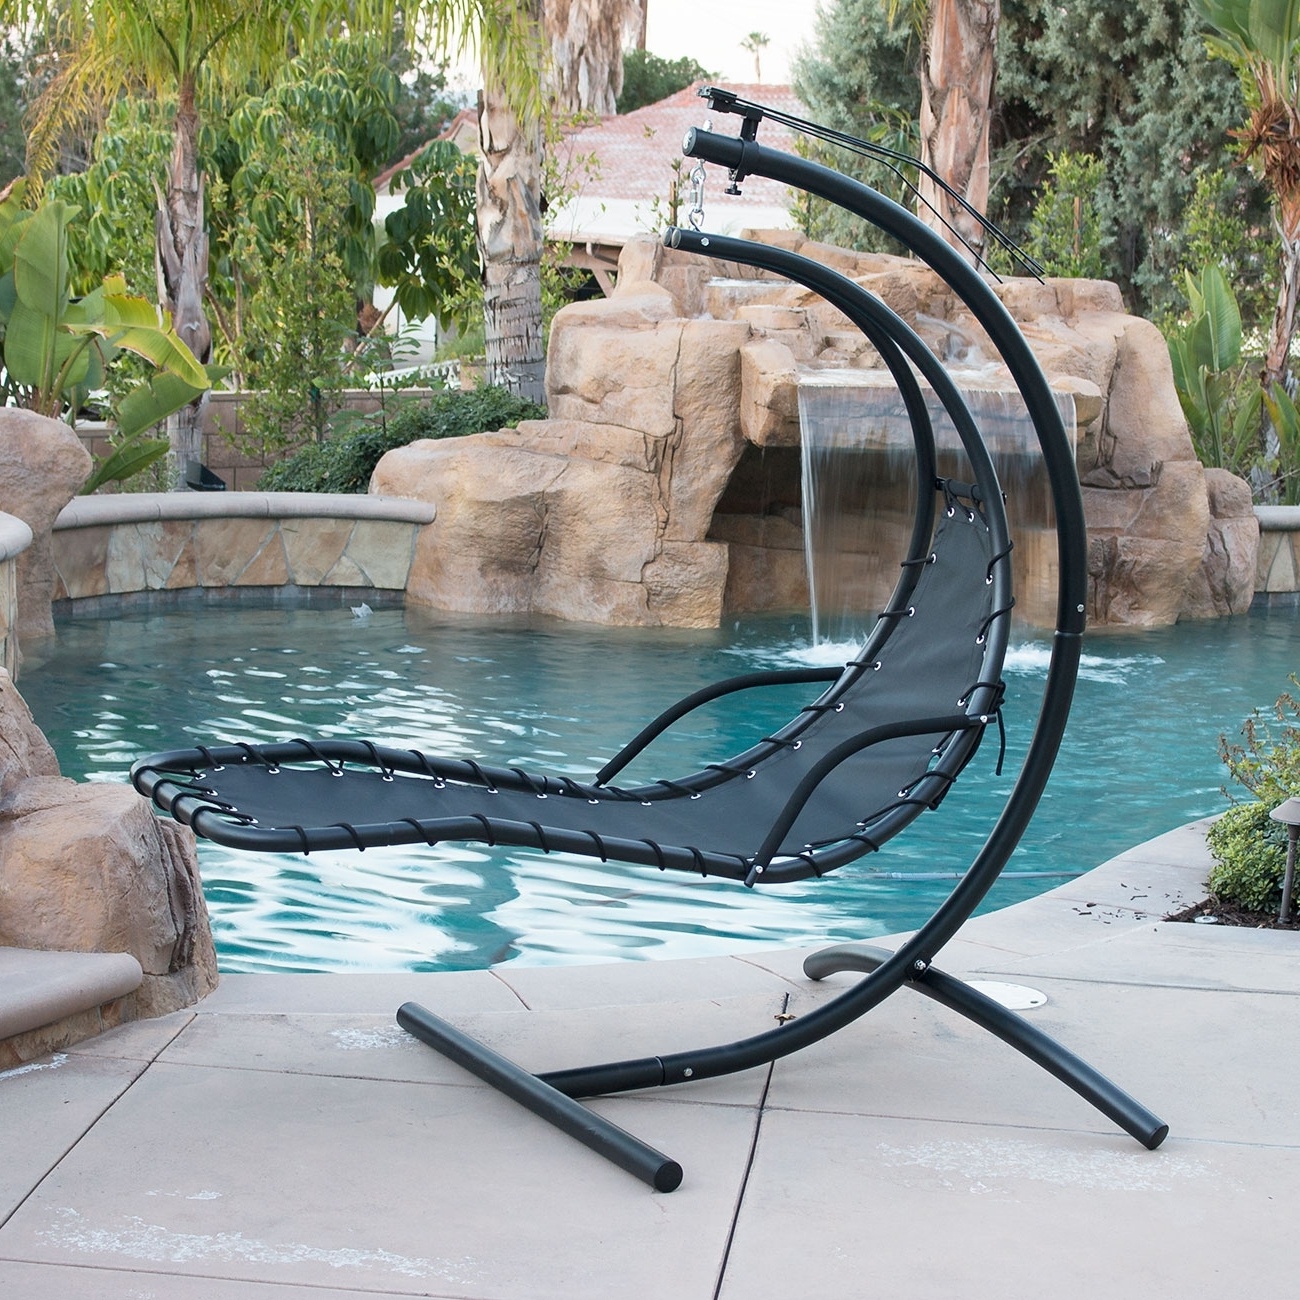 Canopy Lounge Chair Outdoor • Lounge Chairs Ideas Intended For Widely Used Outdoor Chaise Lounge Chairs With Canopy (View 3 of 15)